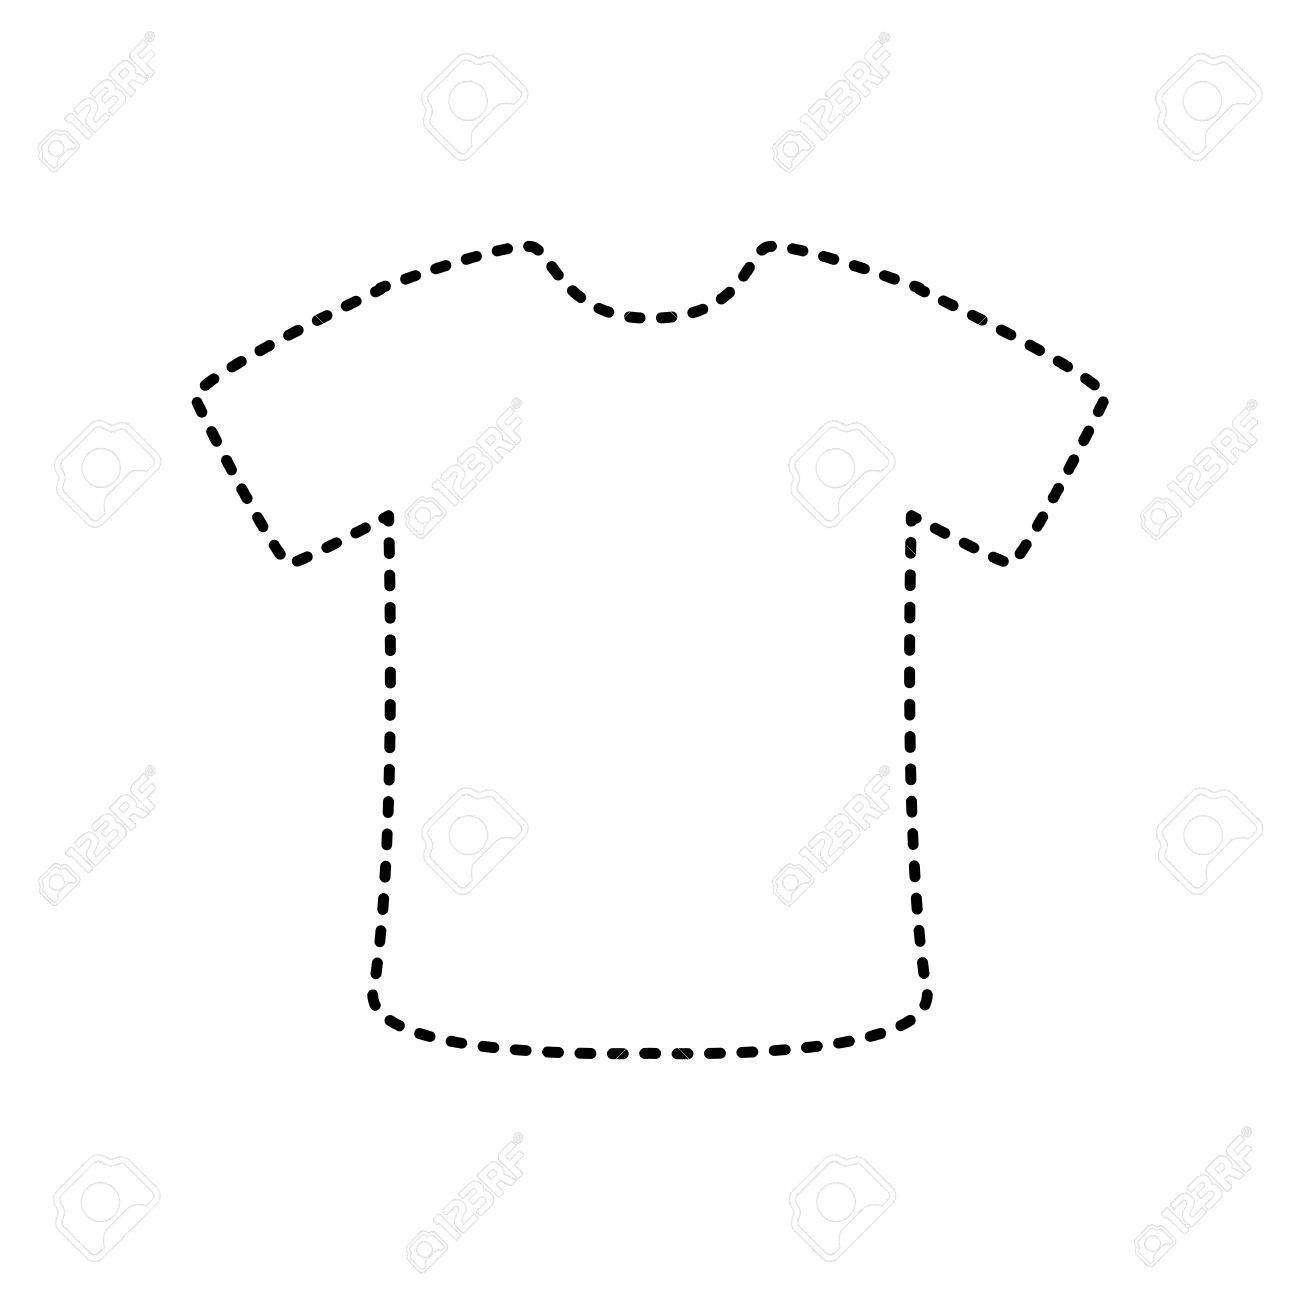 Blanco Background In icon Sign Negro T On ShirtvectorDeckled Zwpklitoxu rQdhtsC